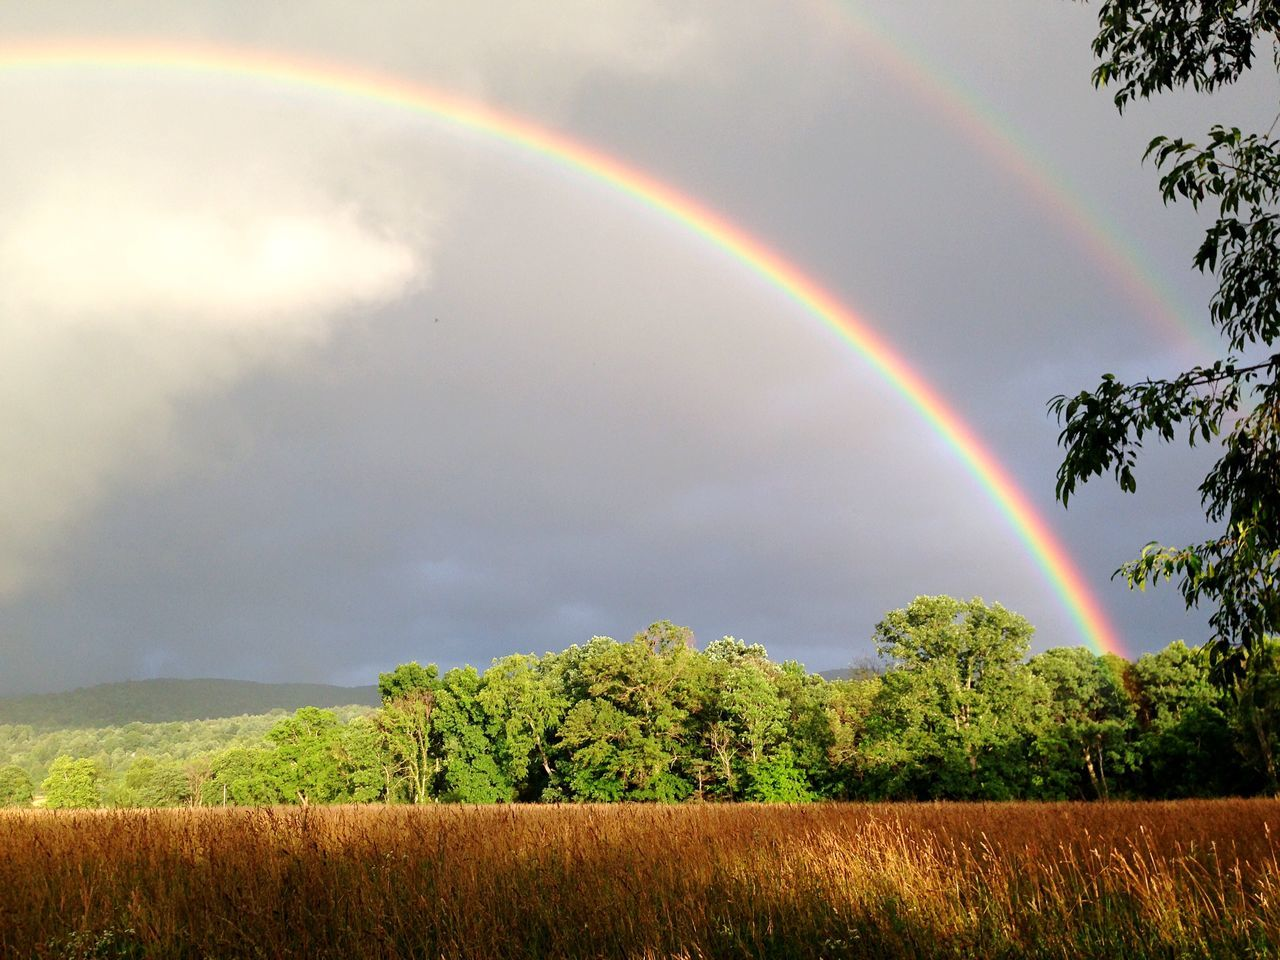 Double rainbow. The Great Outdoors - 2015 EyeEm Awards Rainbow Pennsylvania Taking Photos Clouds Nature Phoneography EyeEm Nature Lover Countryside